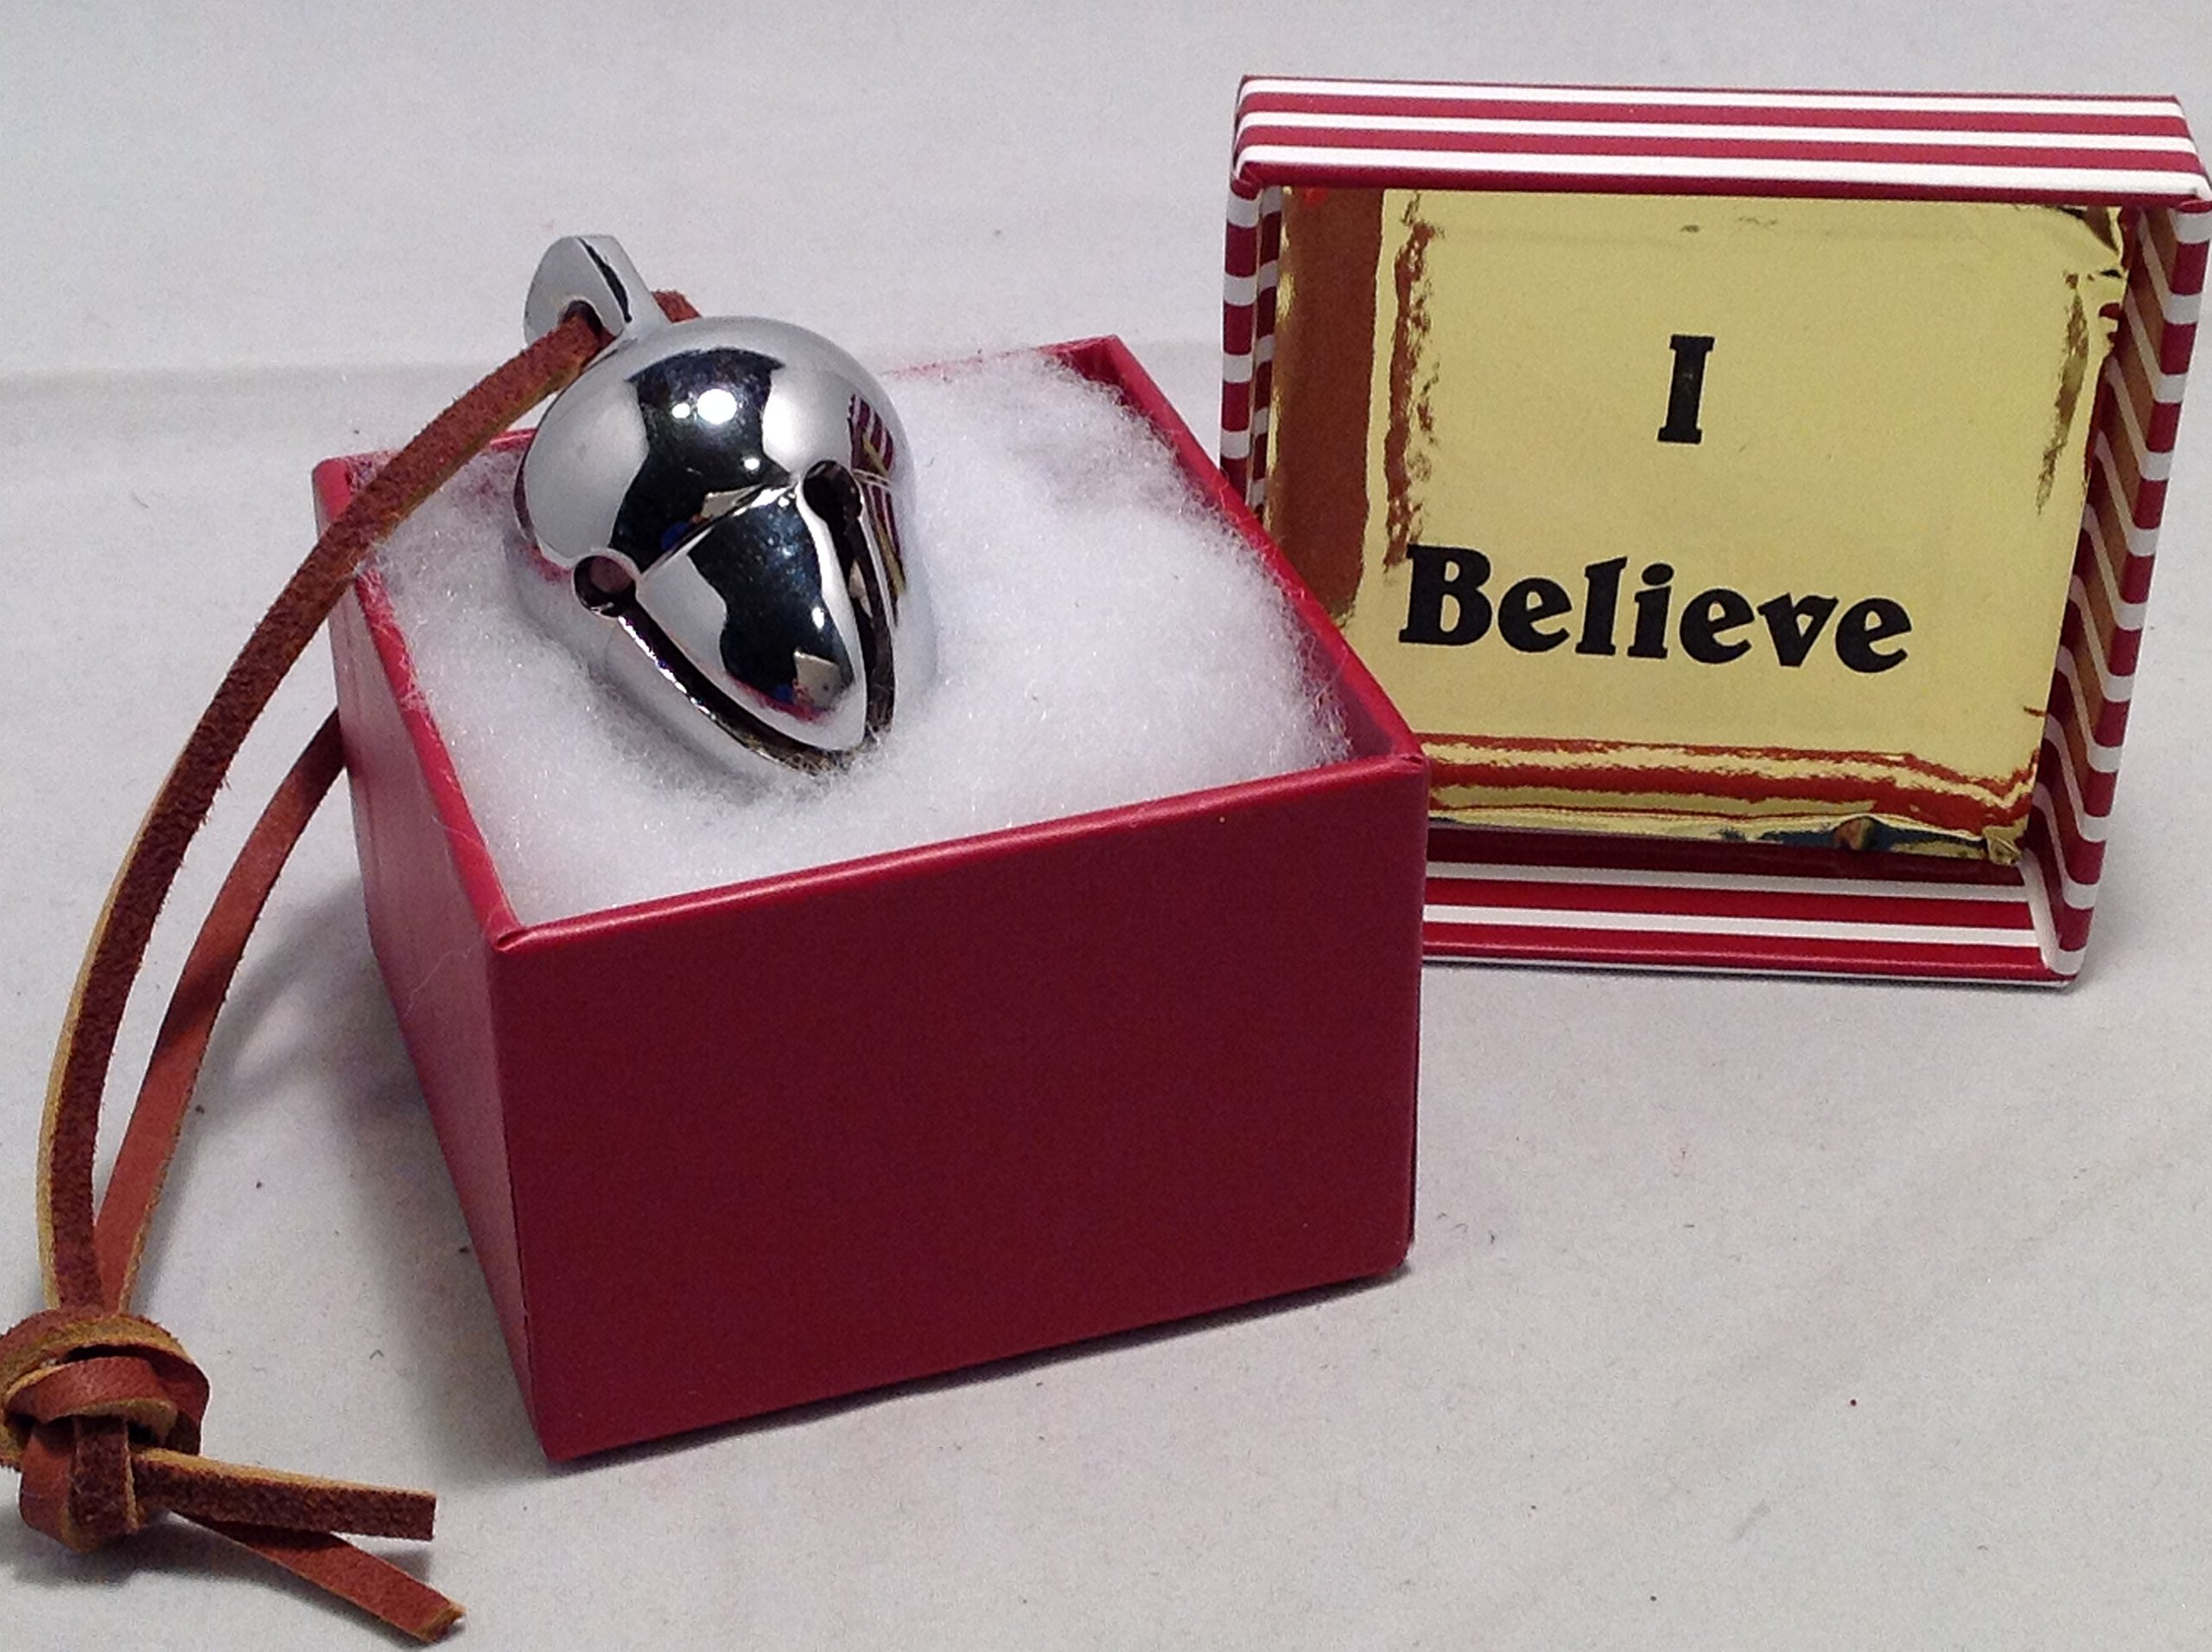 Elf Favorite Polar Double Chamber Silver Sleigh Bell From Santa's Sleigh W I Believe Box Express From the Workshop